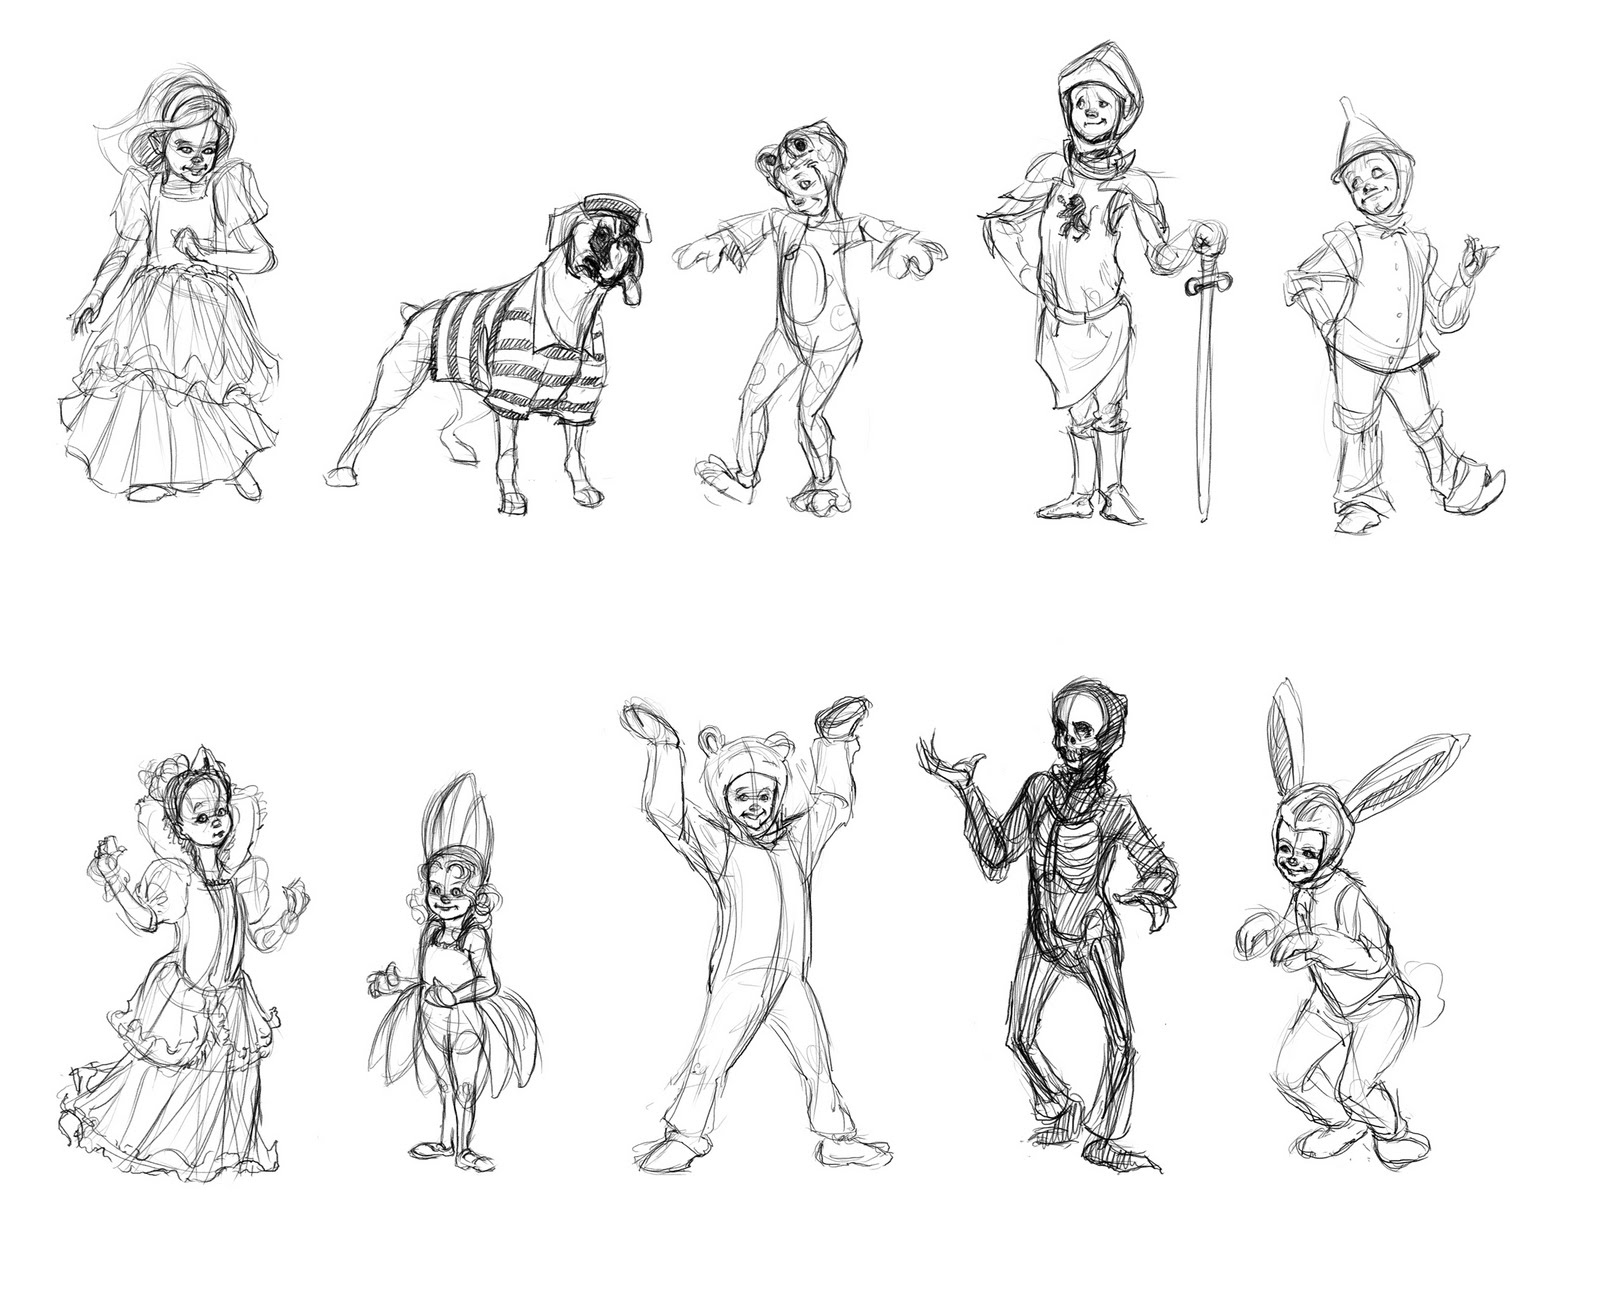 My Little Pony La Magia De La Amistad Fluttershy Brony moreover Gesture Drawing Poses moreover Lifesize Black Skeleton also Chain Gang Guys Group Costume also Pintarimagenes. on scary boy costumes for halloween